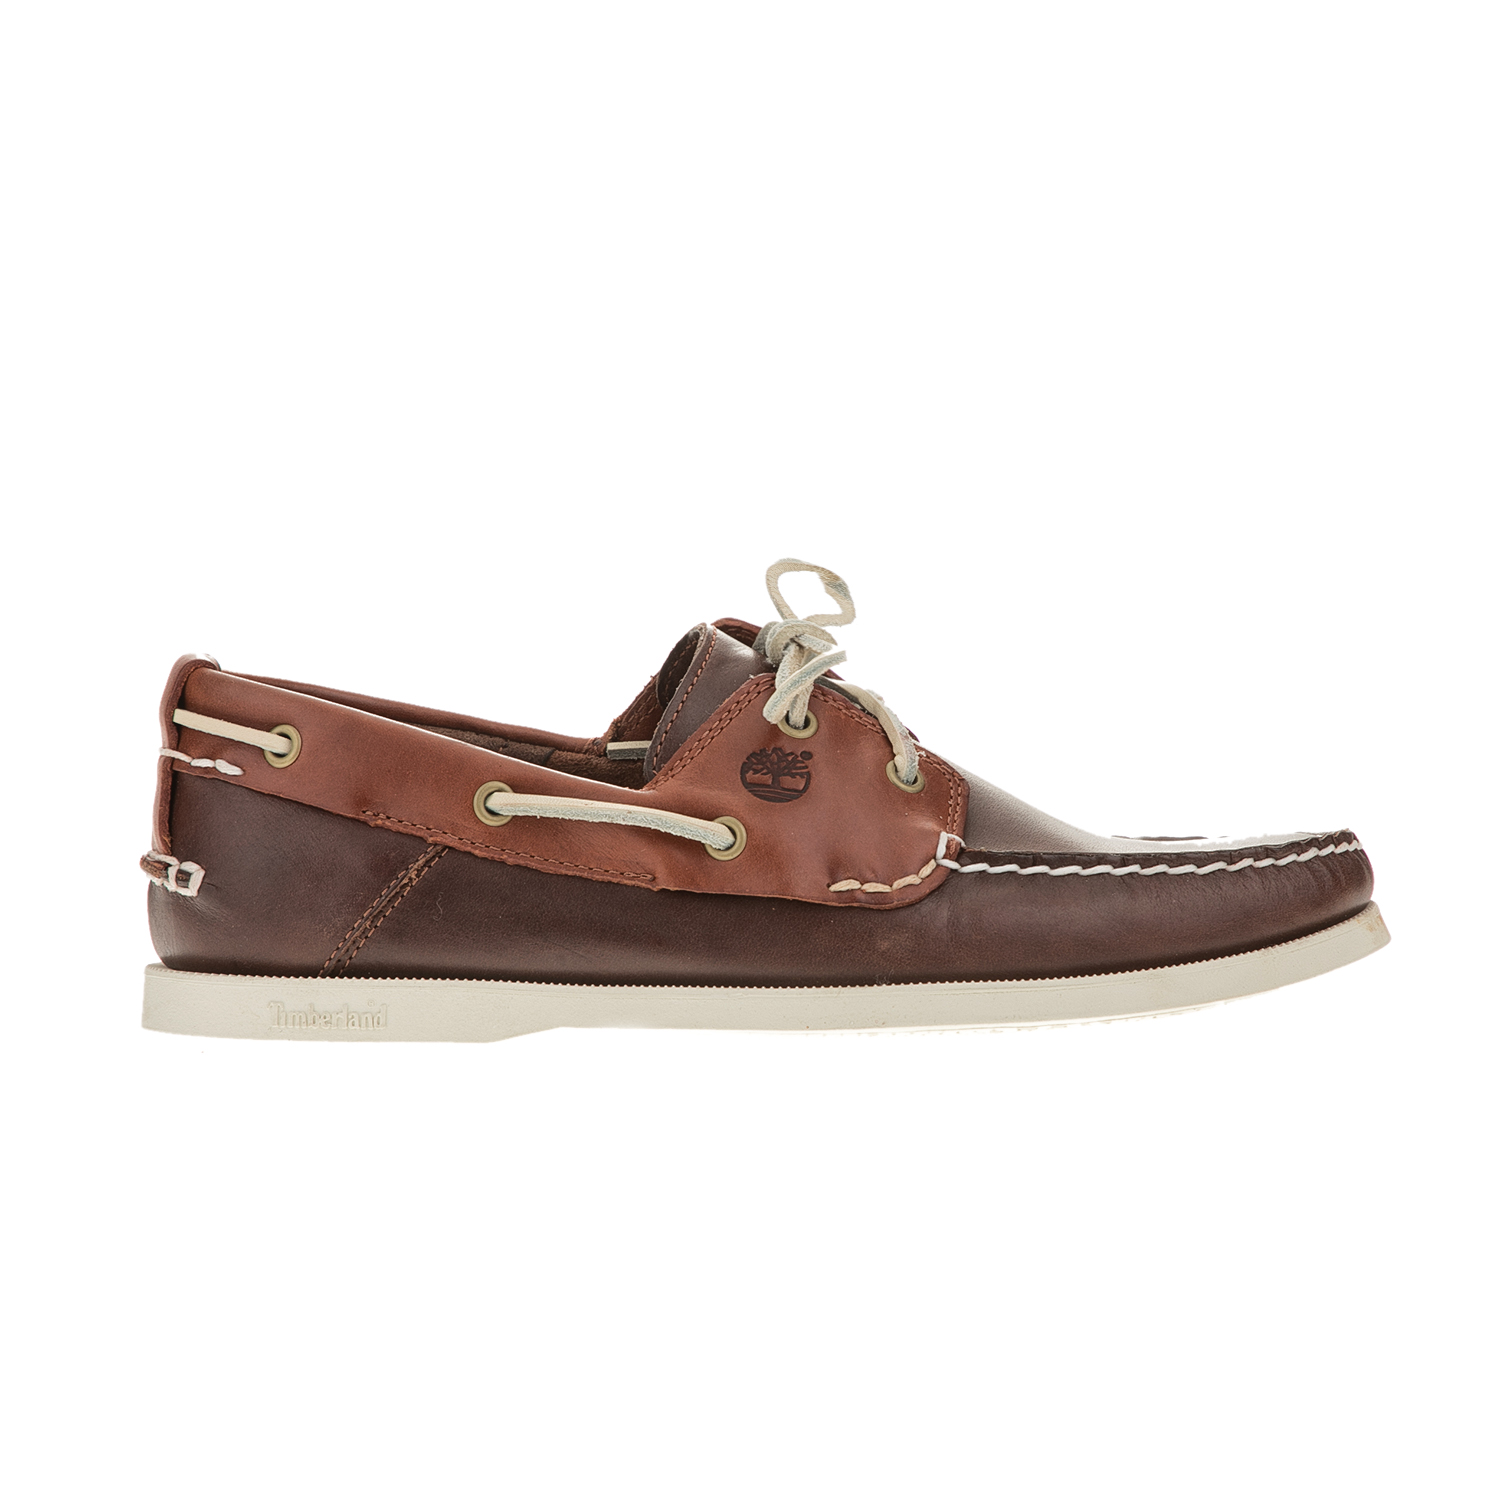 TIMBERLAND - Ανδρικά boat shoes TIMBERLAND καφέ ανδρικά παπούτσια boat shoes